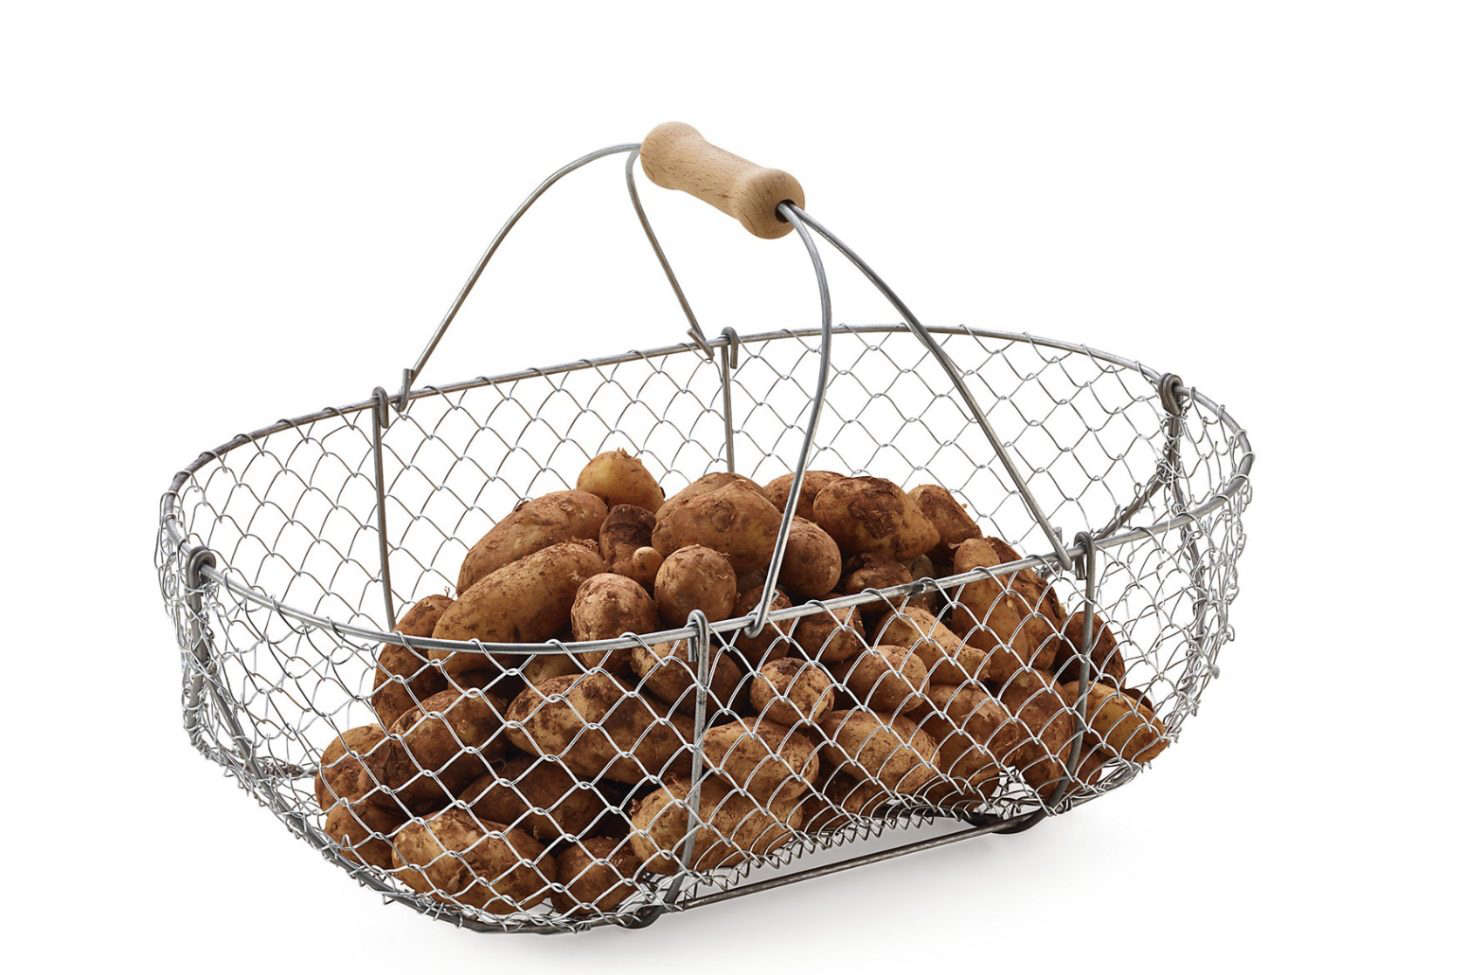 A Braided Wire Basket from Manufactum. Its original purpose was to harvest cider apples in late fall; available in small, medium, and large sizes; €34 to €44.